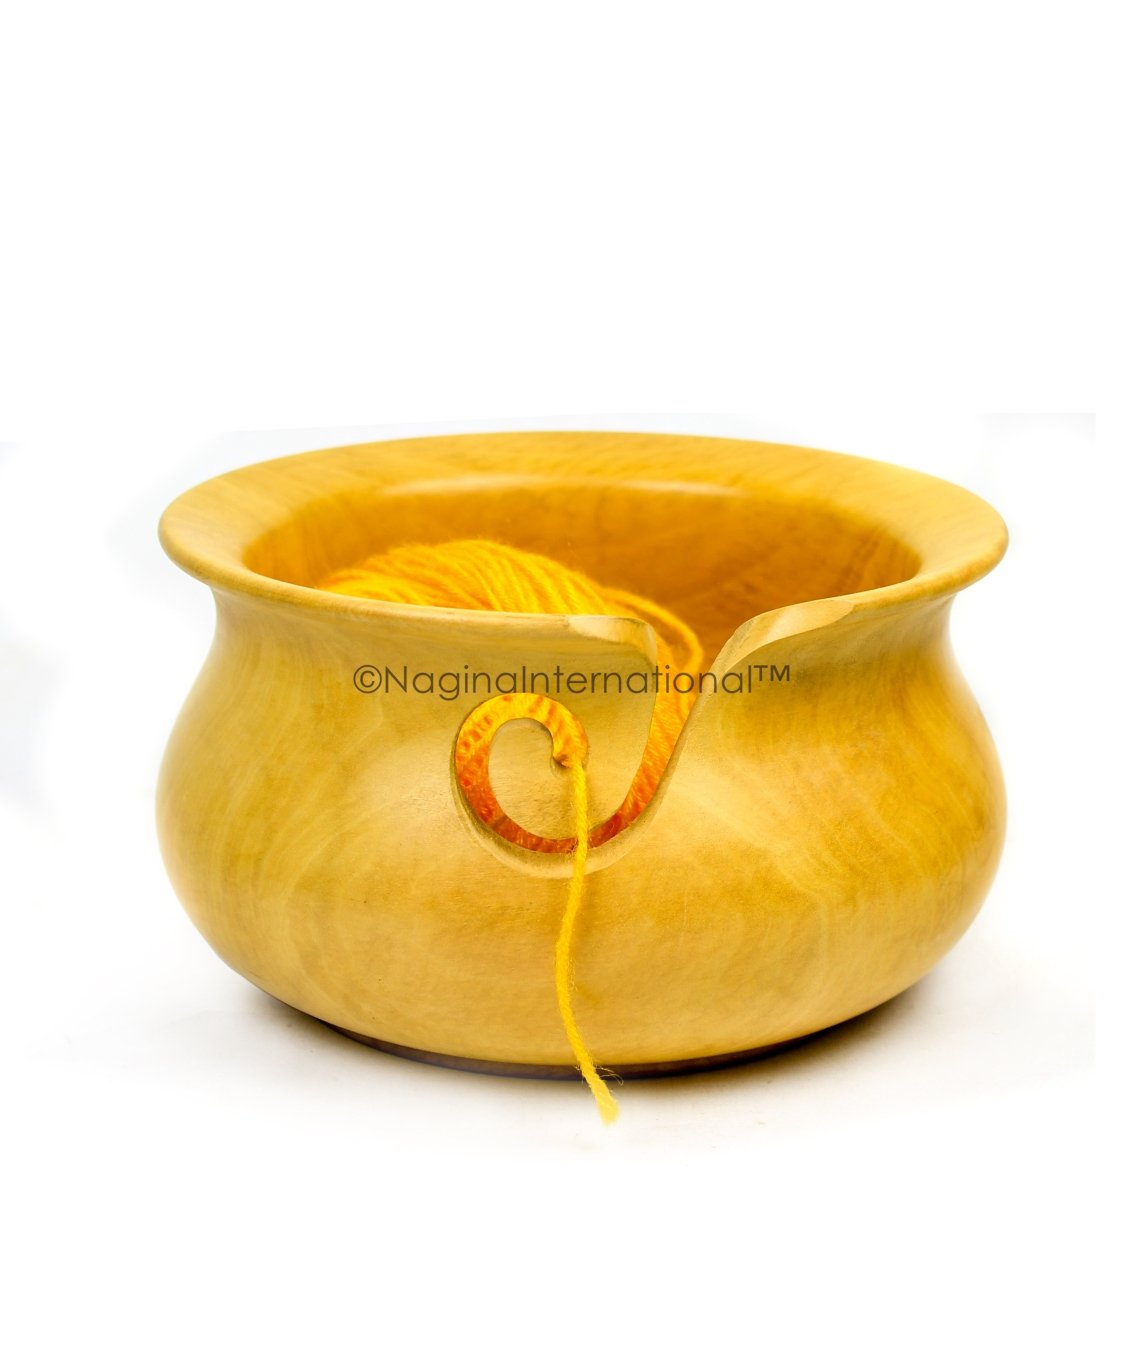 Nagina International Kitchen Pot Styled Premium Wood Crafted Portable Yarn Storage Knitting Bowl (Large, Turmeric Wood)